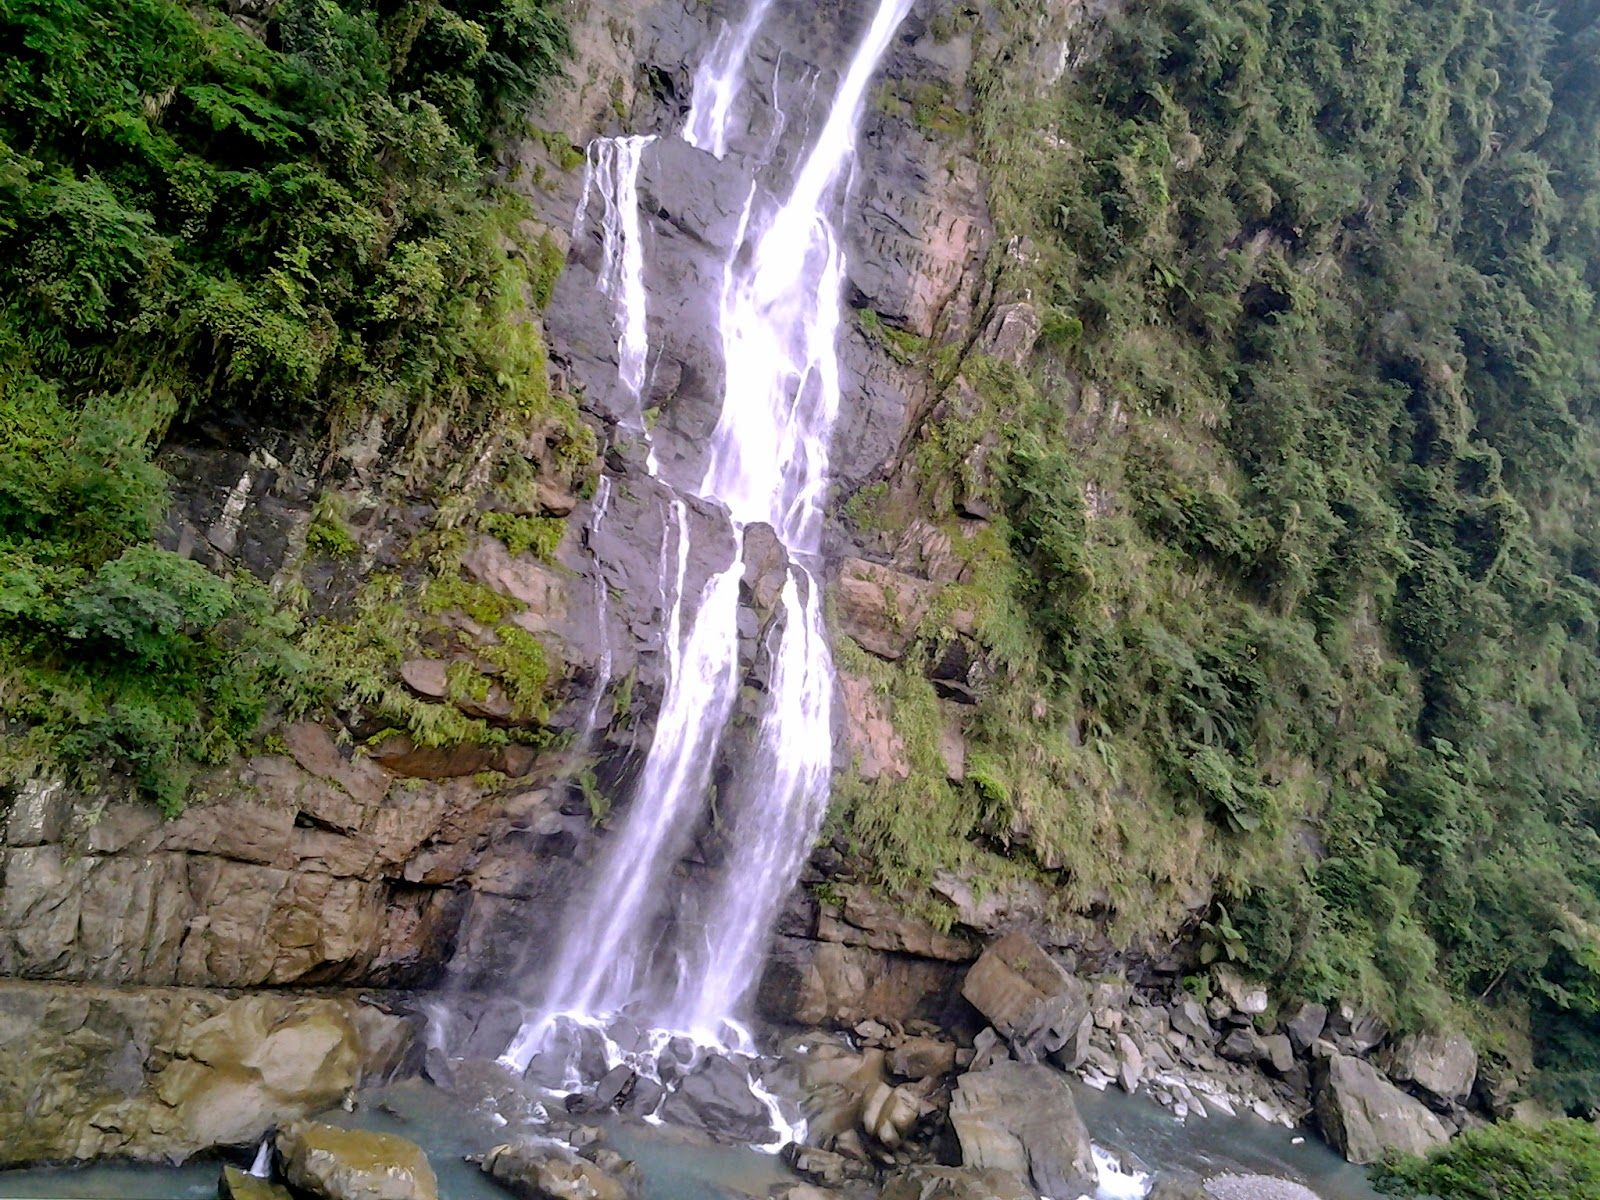 The bottom part of Wulai waterfall Taiwan